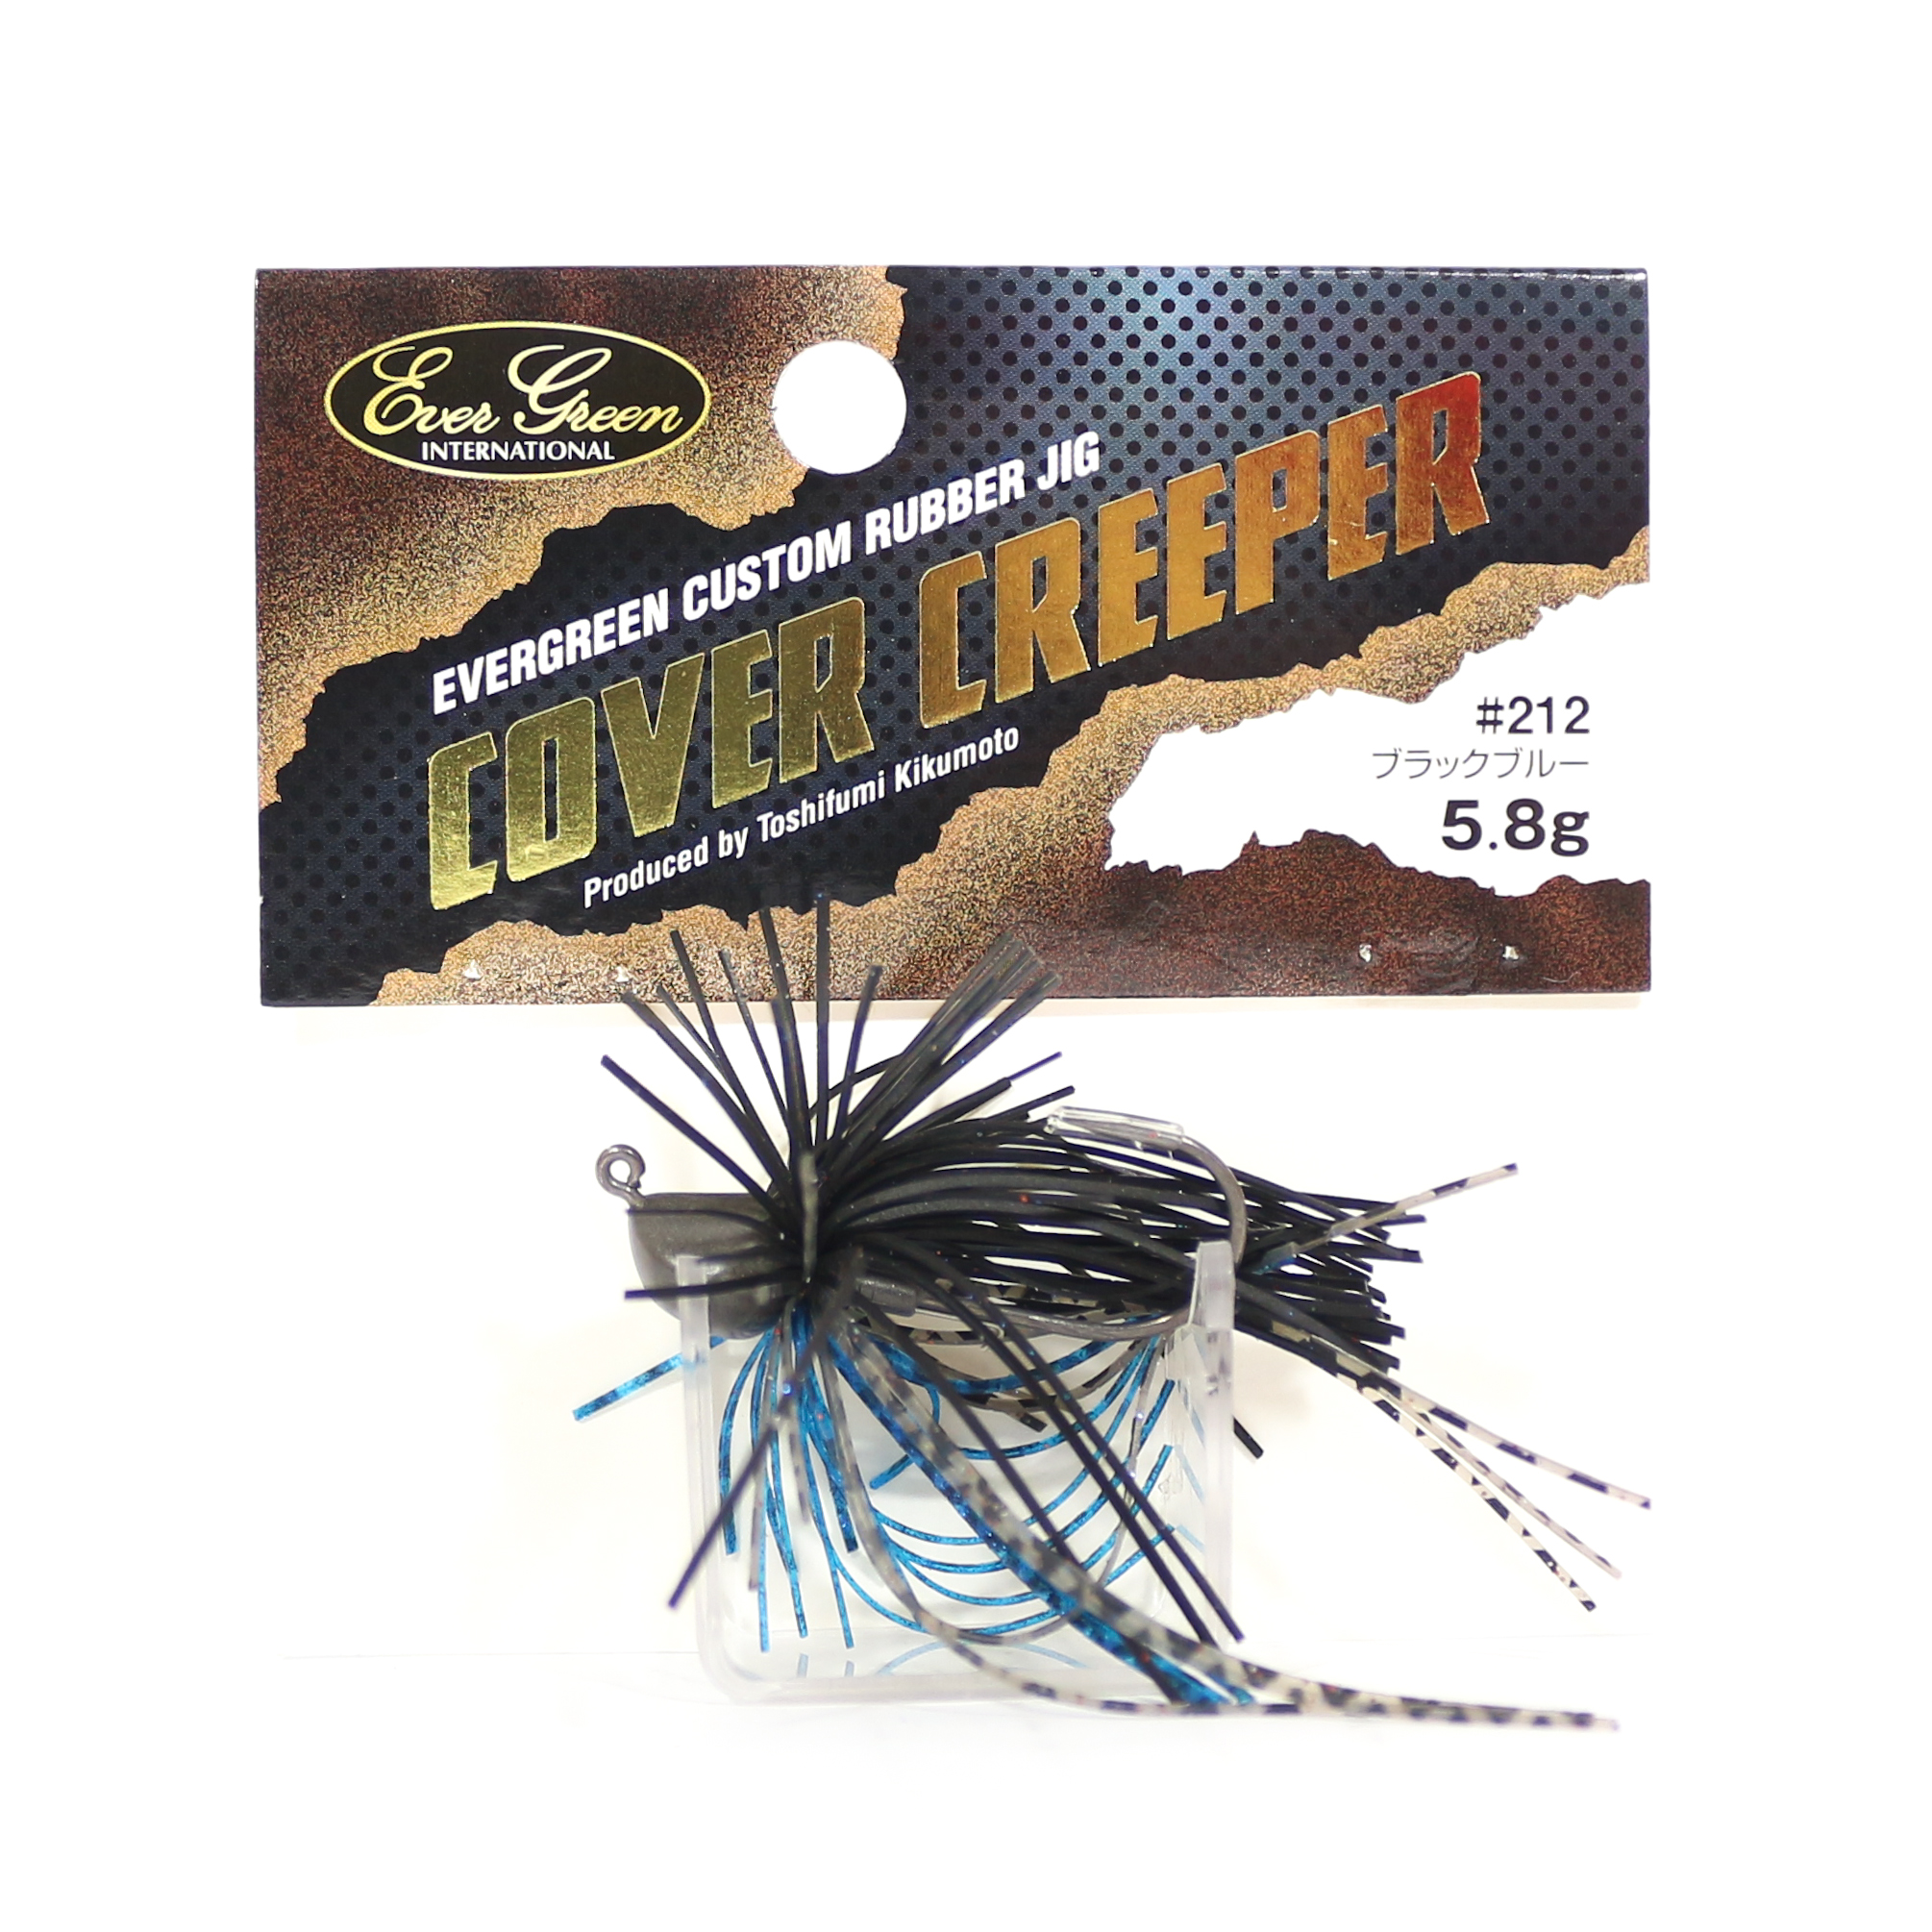 Evergreen Rubber Jig Cover Creeper 5.8g Sinking Lure 212 (3627)